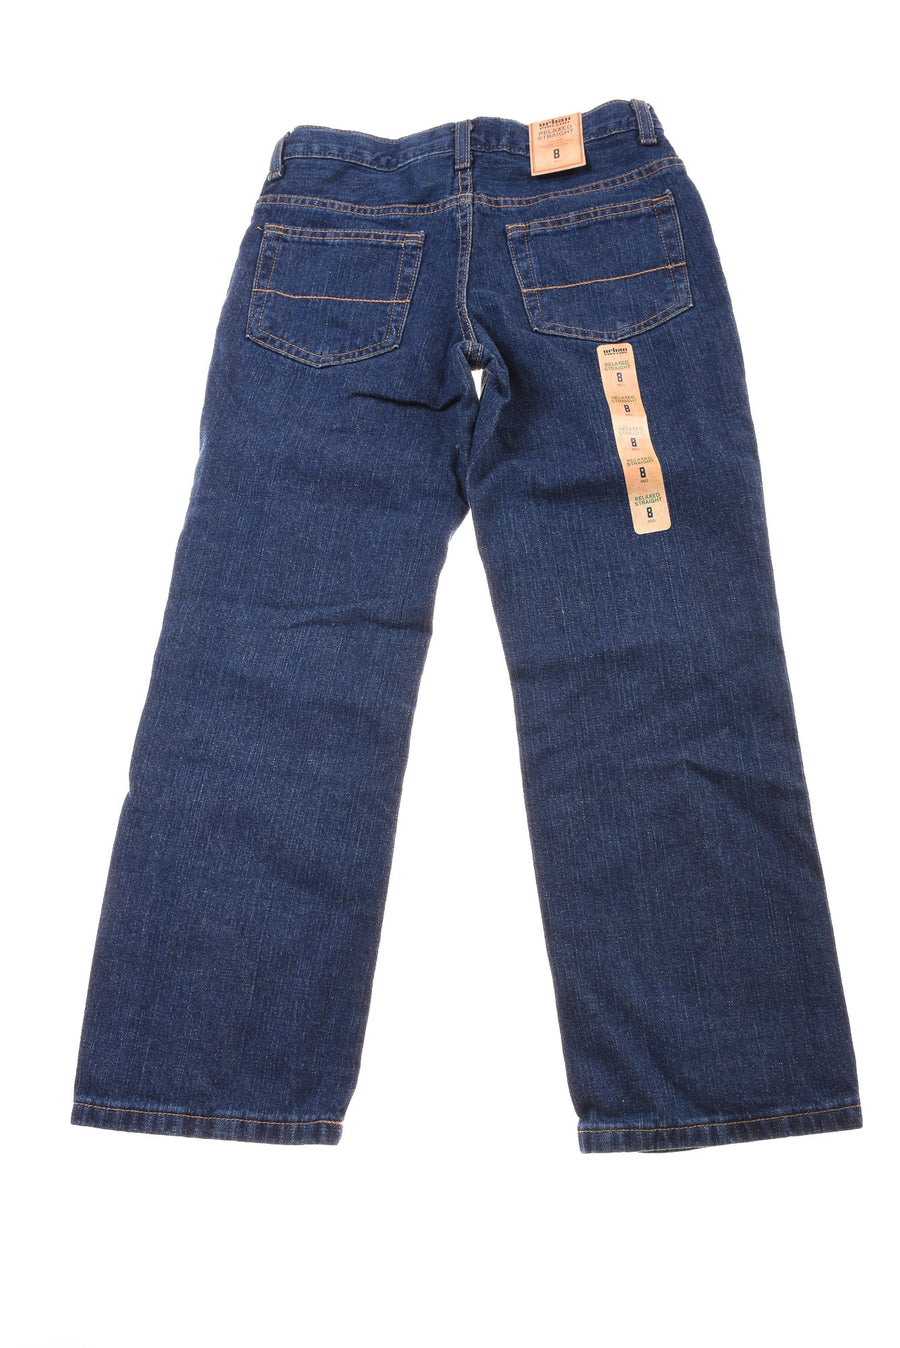 NEW Urban Pipeline Boy's Jeans 8 Regular Blue